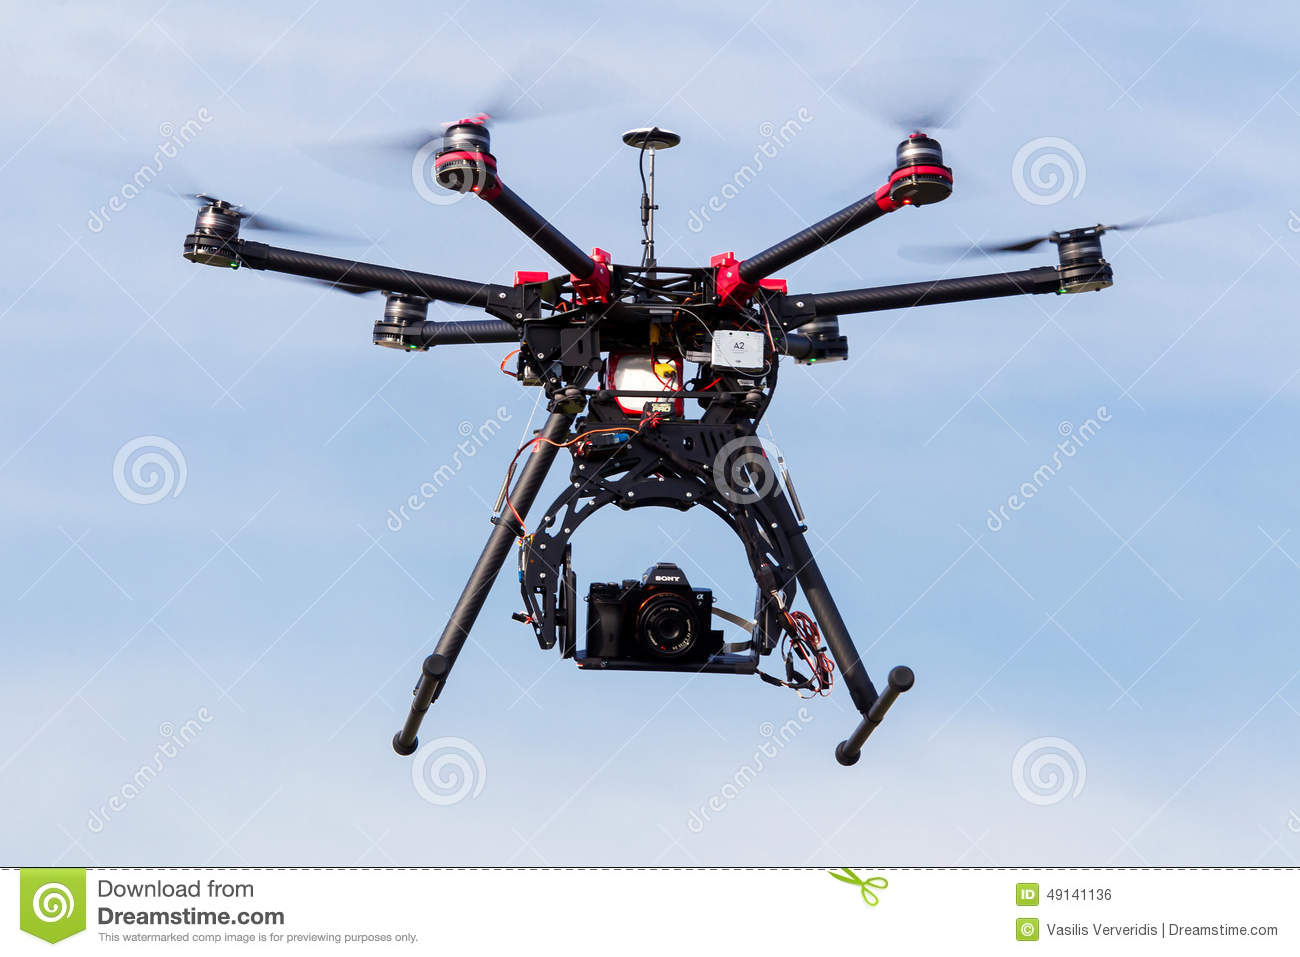 Dji S900 Drone In Flight With A Mounted Sony A7 Edition